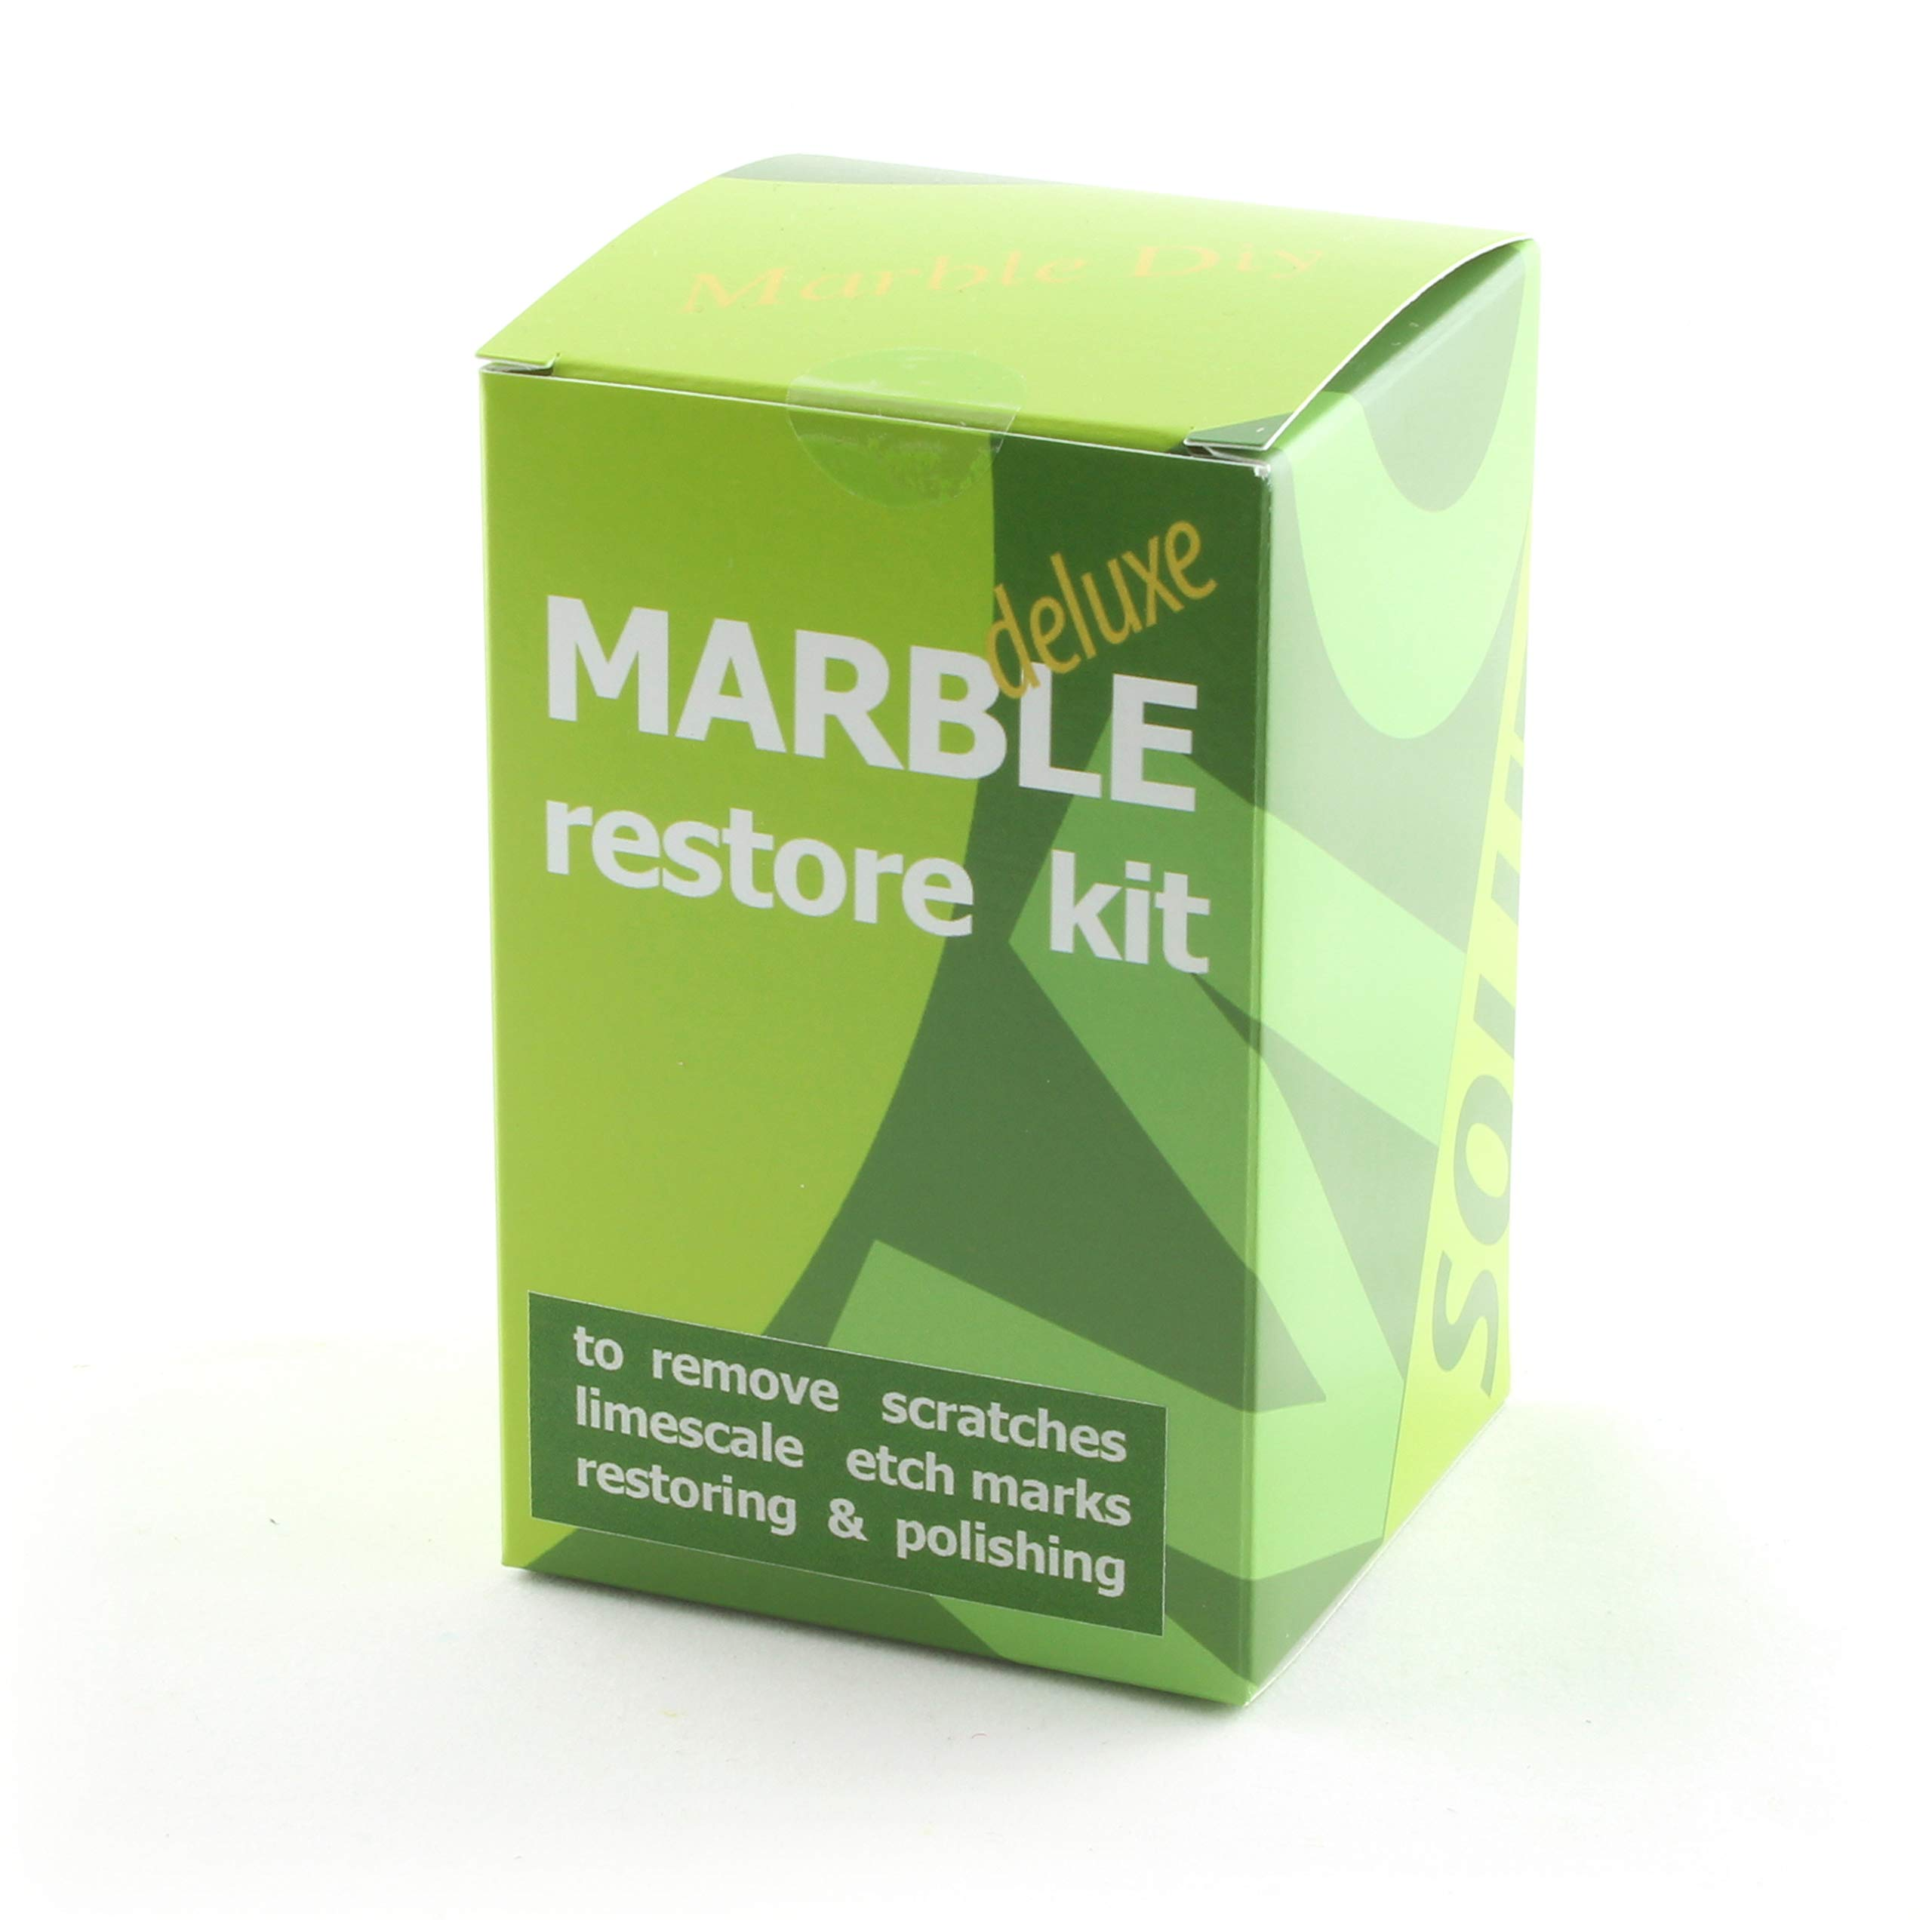 Marble Restore kit Deluxe to Renew The polishing of Natural Stone Ruined by Etch Marks, Scratches or limescale; Packaging 100 gr of Powder polishing